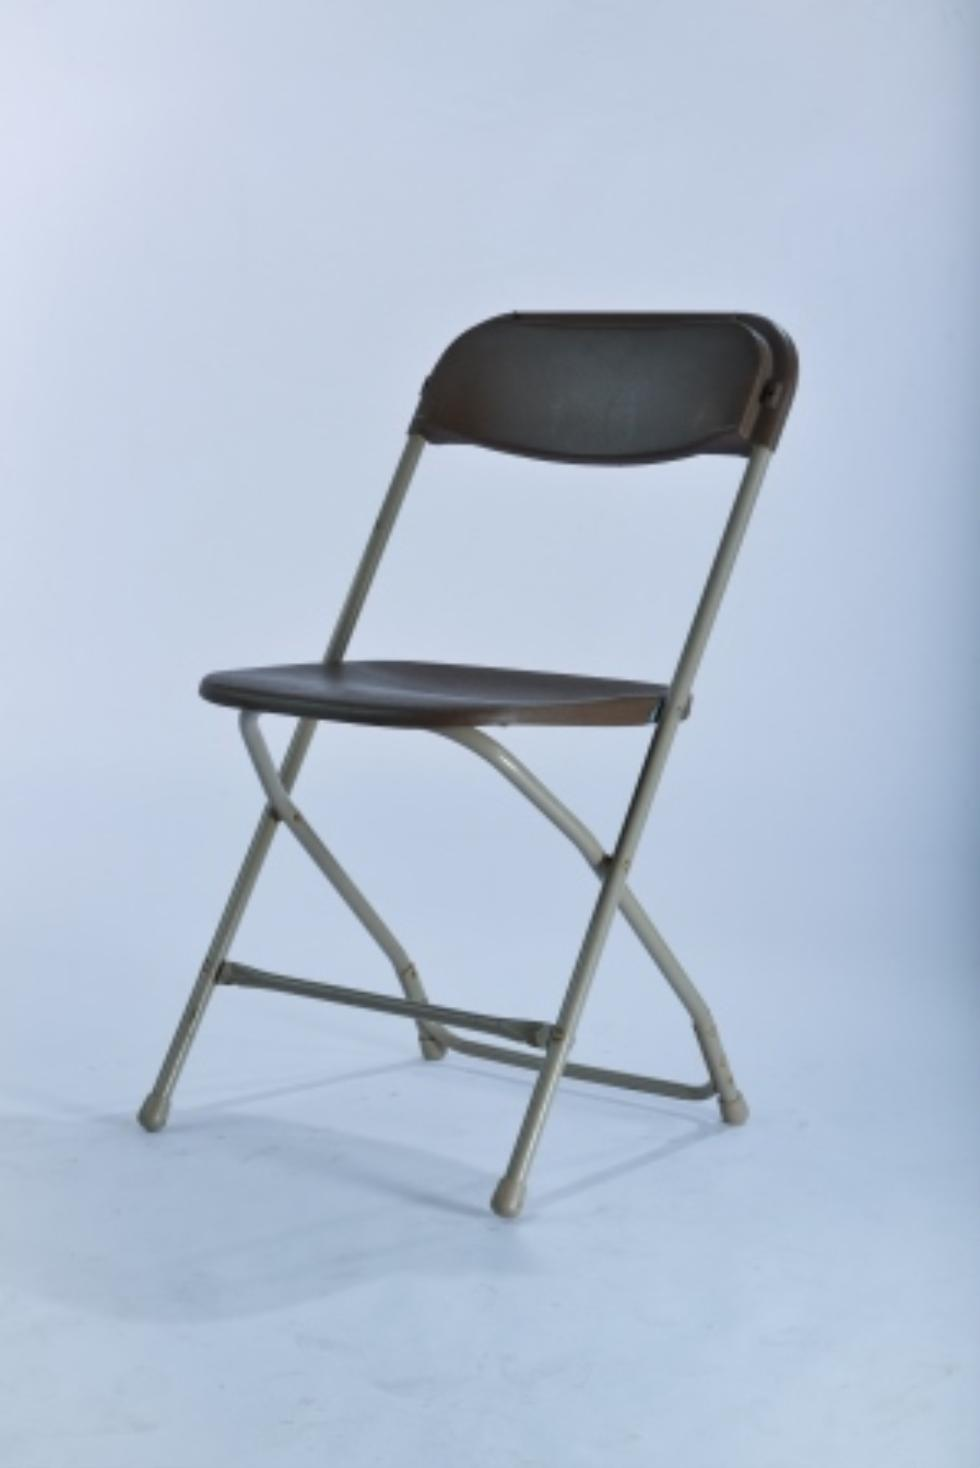 Marianne s Rentals Samsonite Folding Chair Brown Rentals